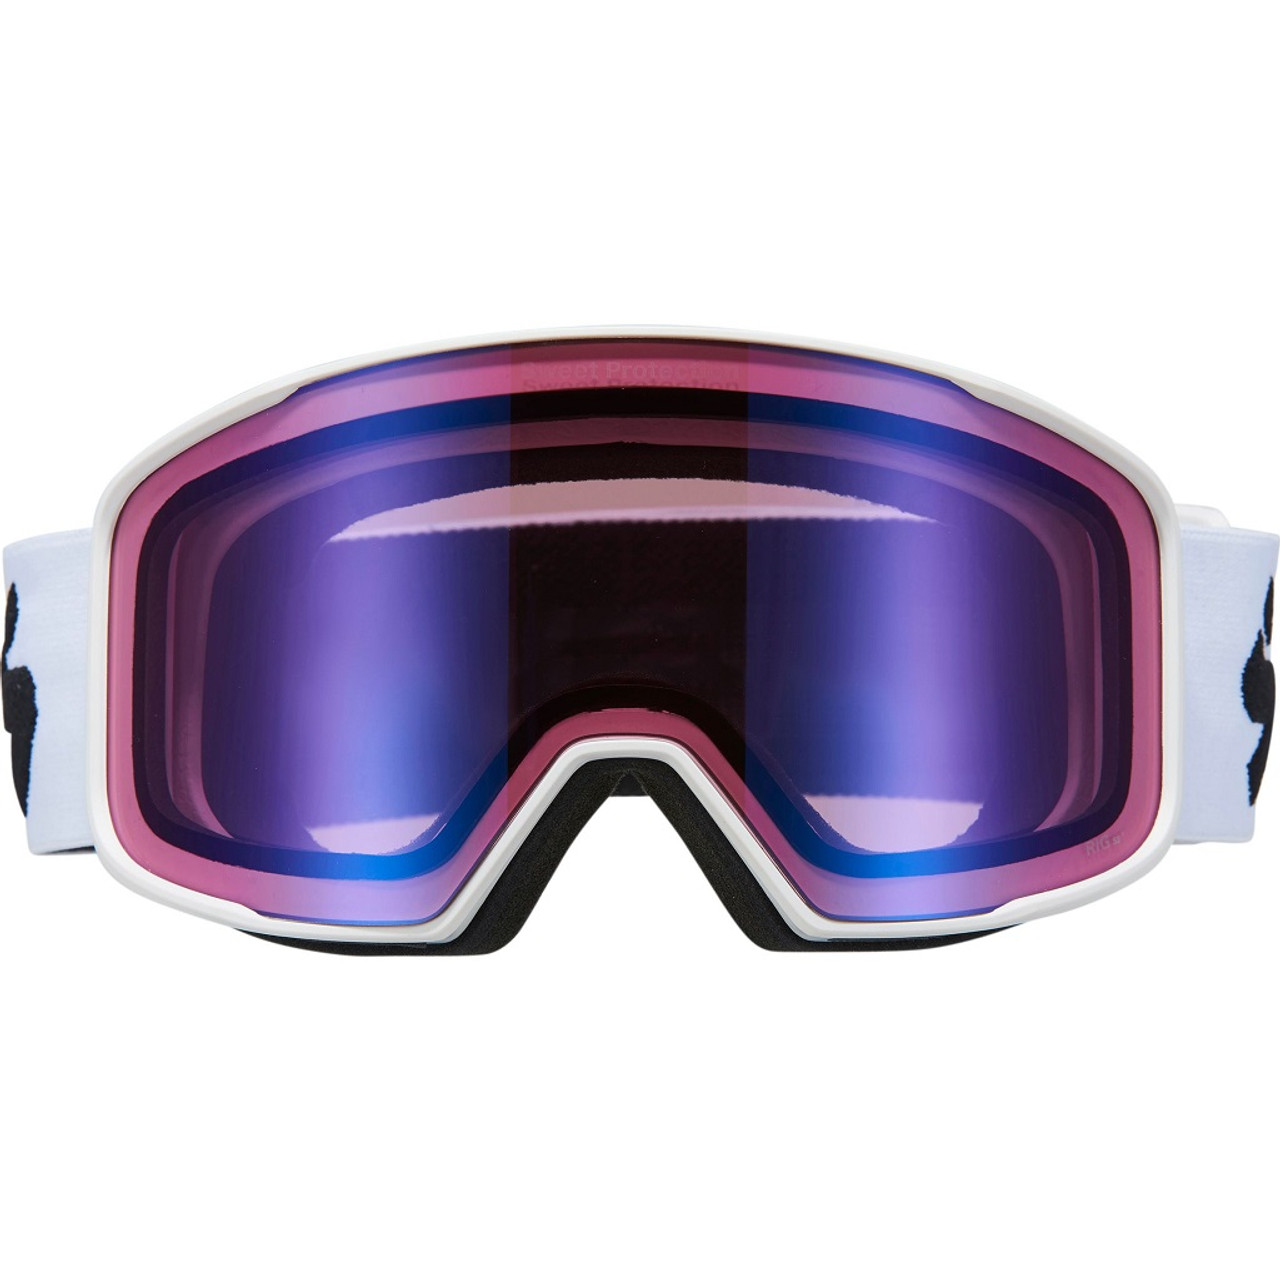 Matte White w/ RIG Light Amethyst - Sweet Protection Boondock Goggles